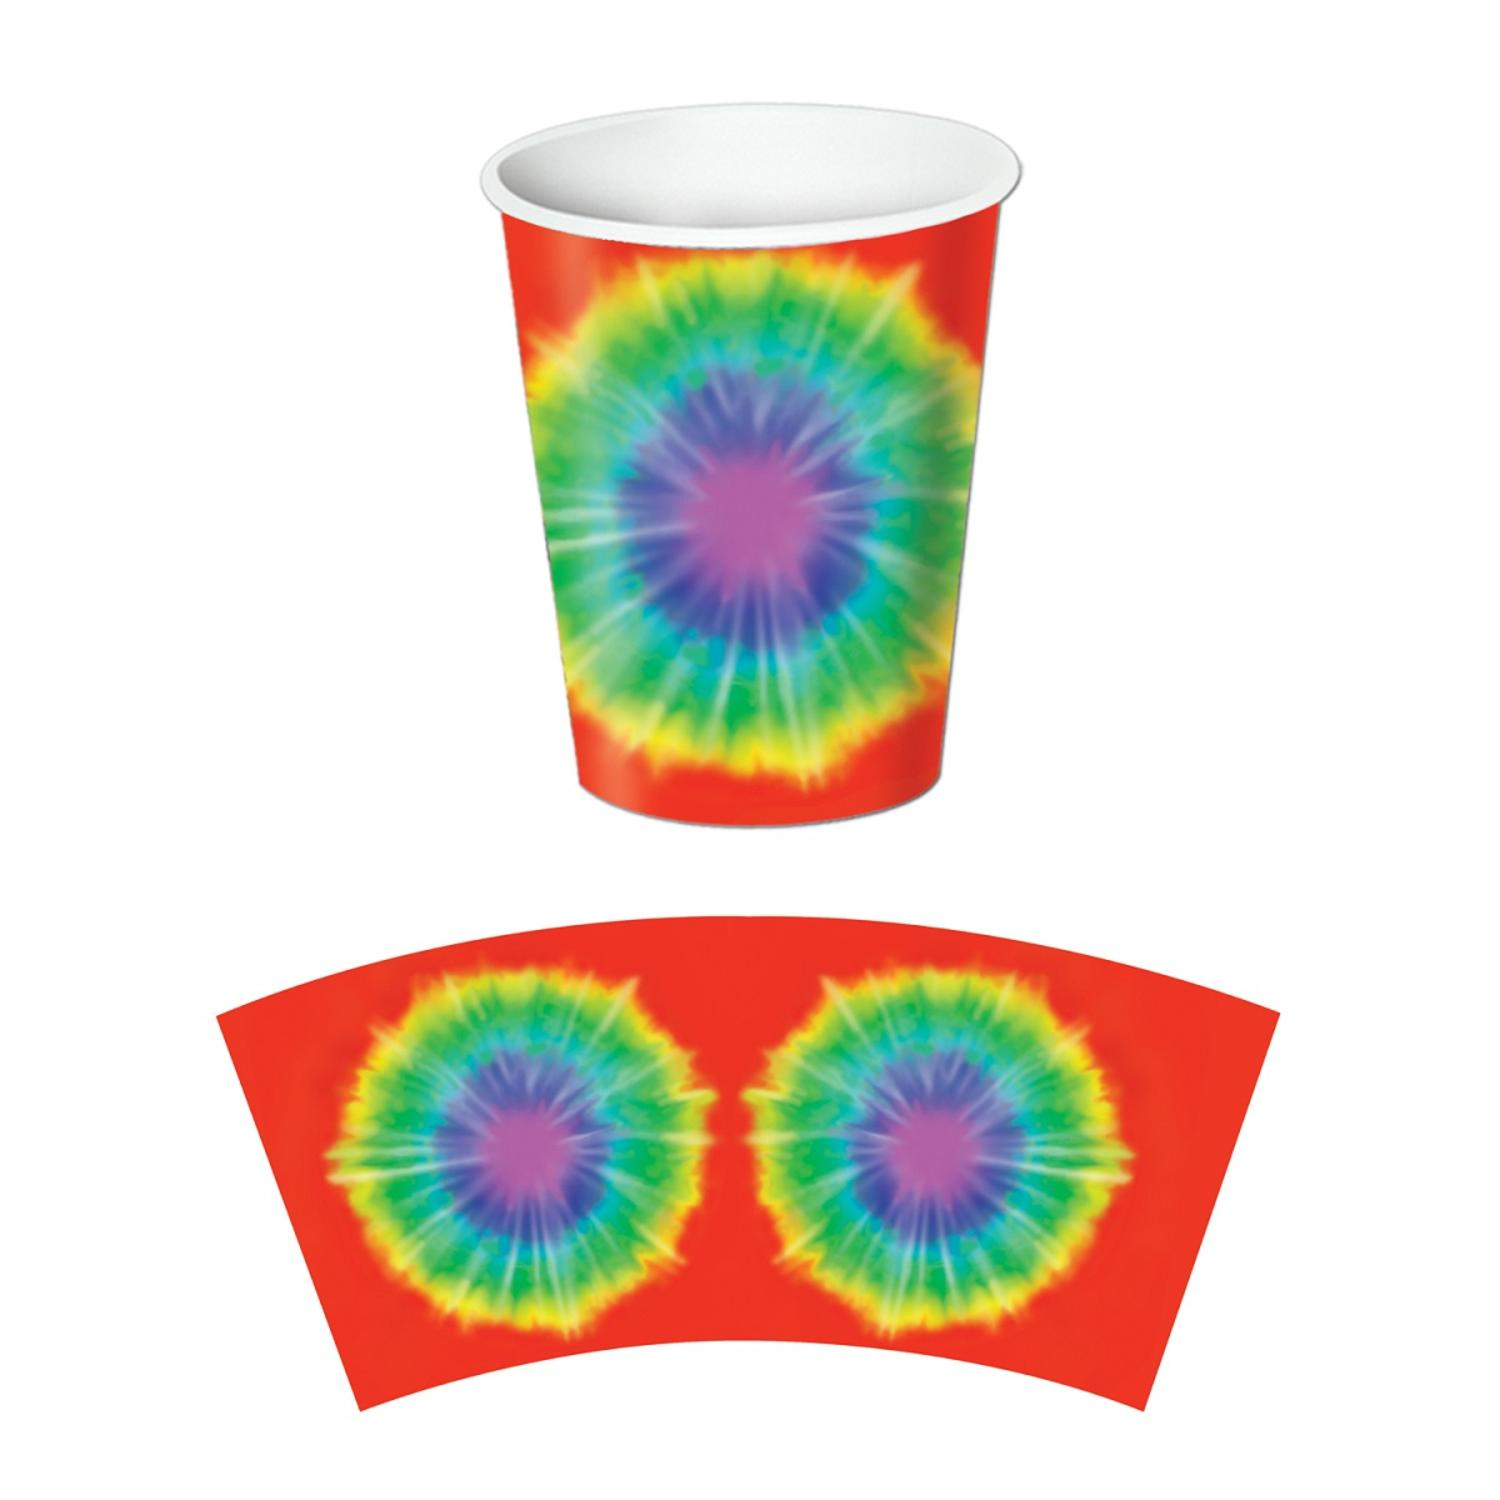 Club Pack of 96 Tie-Dyed Disposable Paper Hot and Cold Beverage Cups 9 oz.